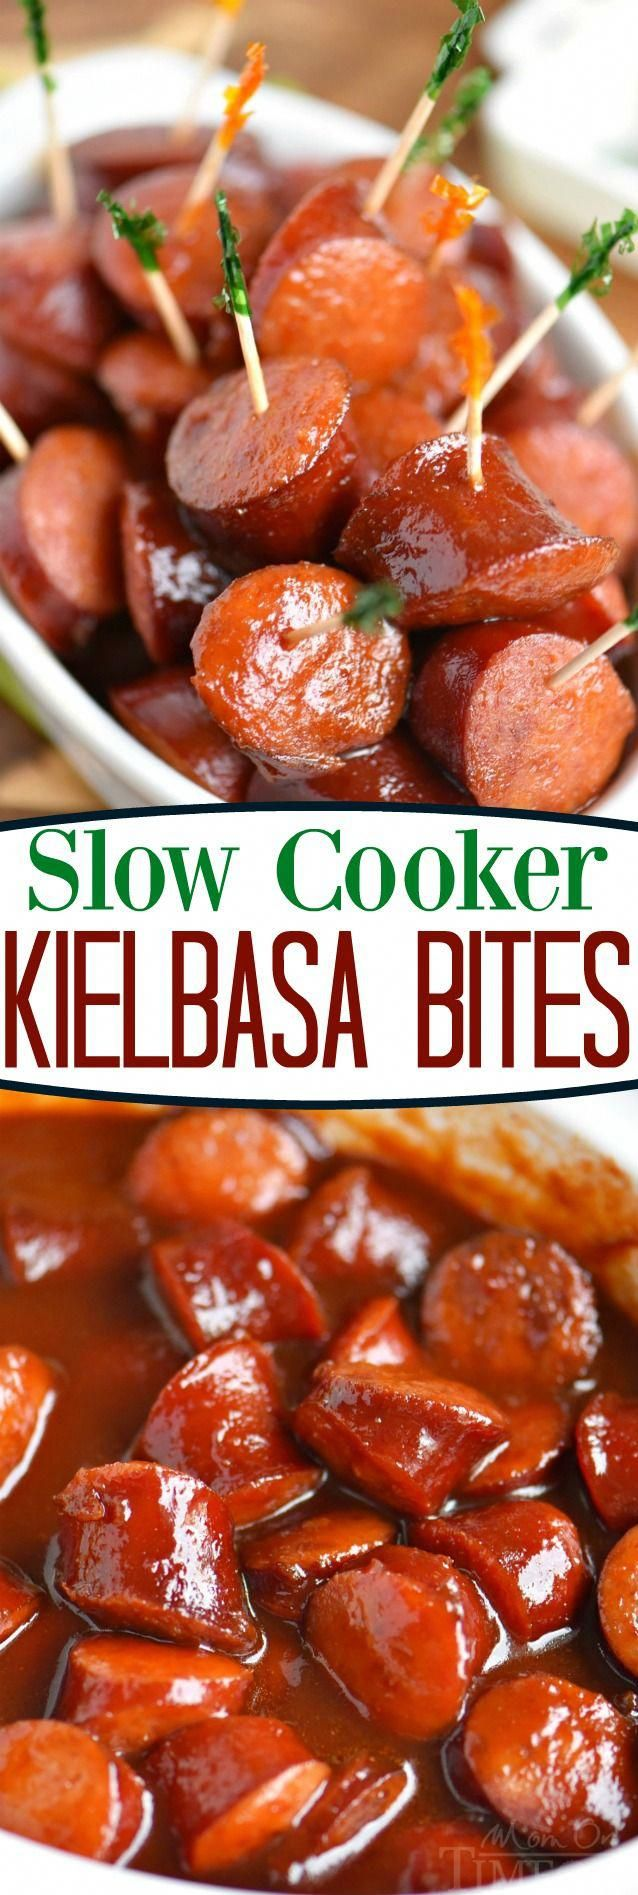 The best appetizer ever! These Slow #cooker Kielbasa Bites are so easy to make and are guaranteed to be a hit at your next party! Great over rice for dinner too! // Mom On Timeout #appetizer #recipe #slowcooker #crockpot #kielbasa #bites #gameday #dishesfordinner